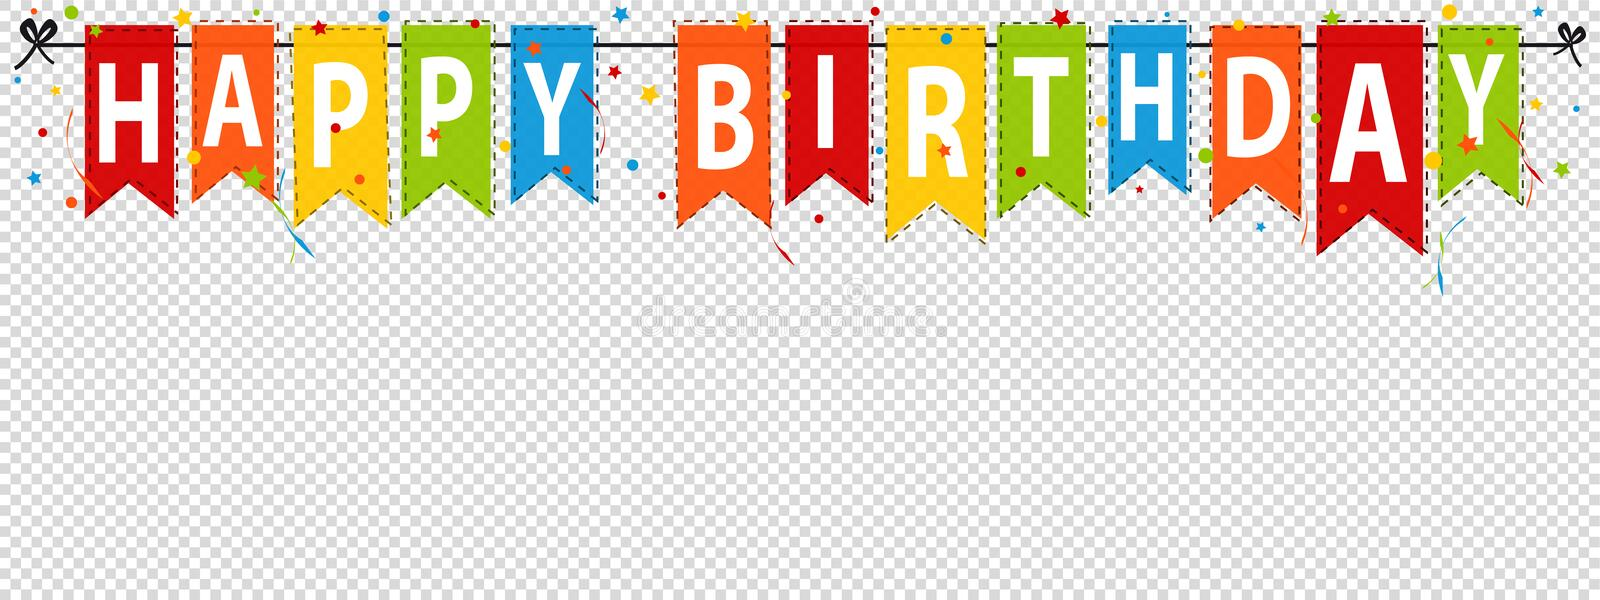 Happy Birthday Banner, Background - Editable Vector Illustration - Isolated On Transparent. Background vector illustration